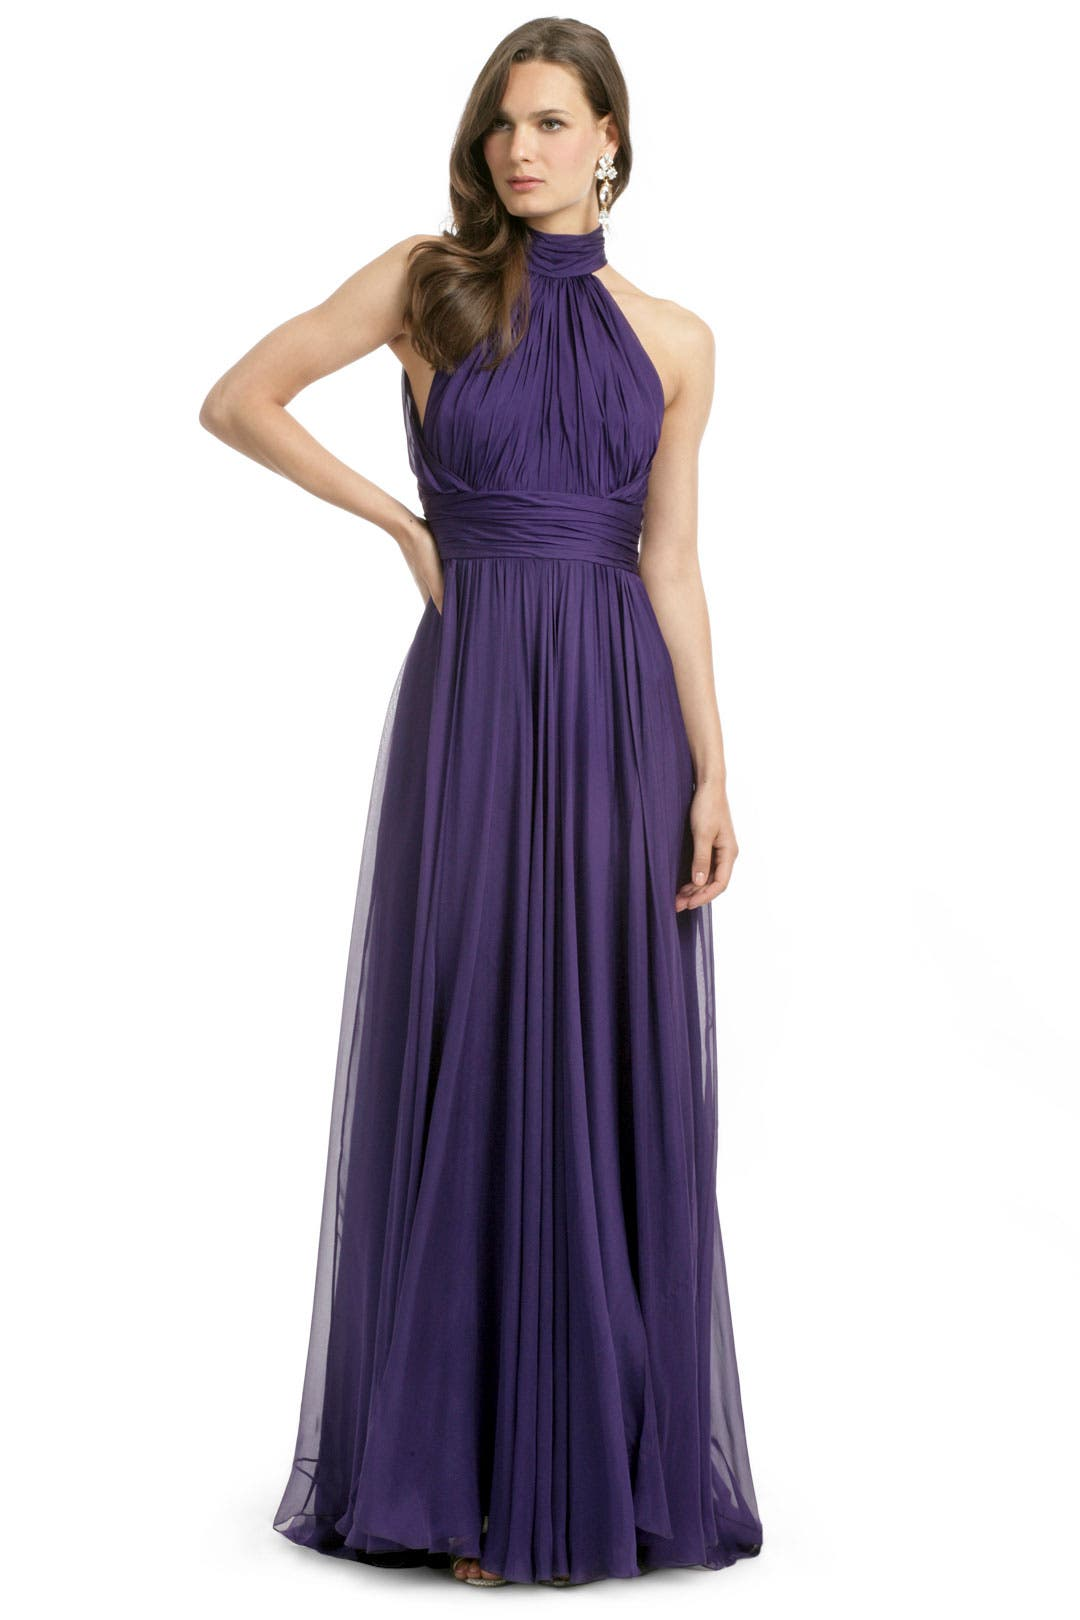 Turn Back Time Gown by Badgley Mischka